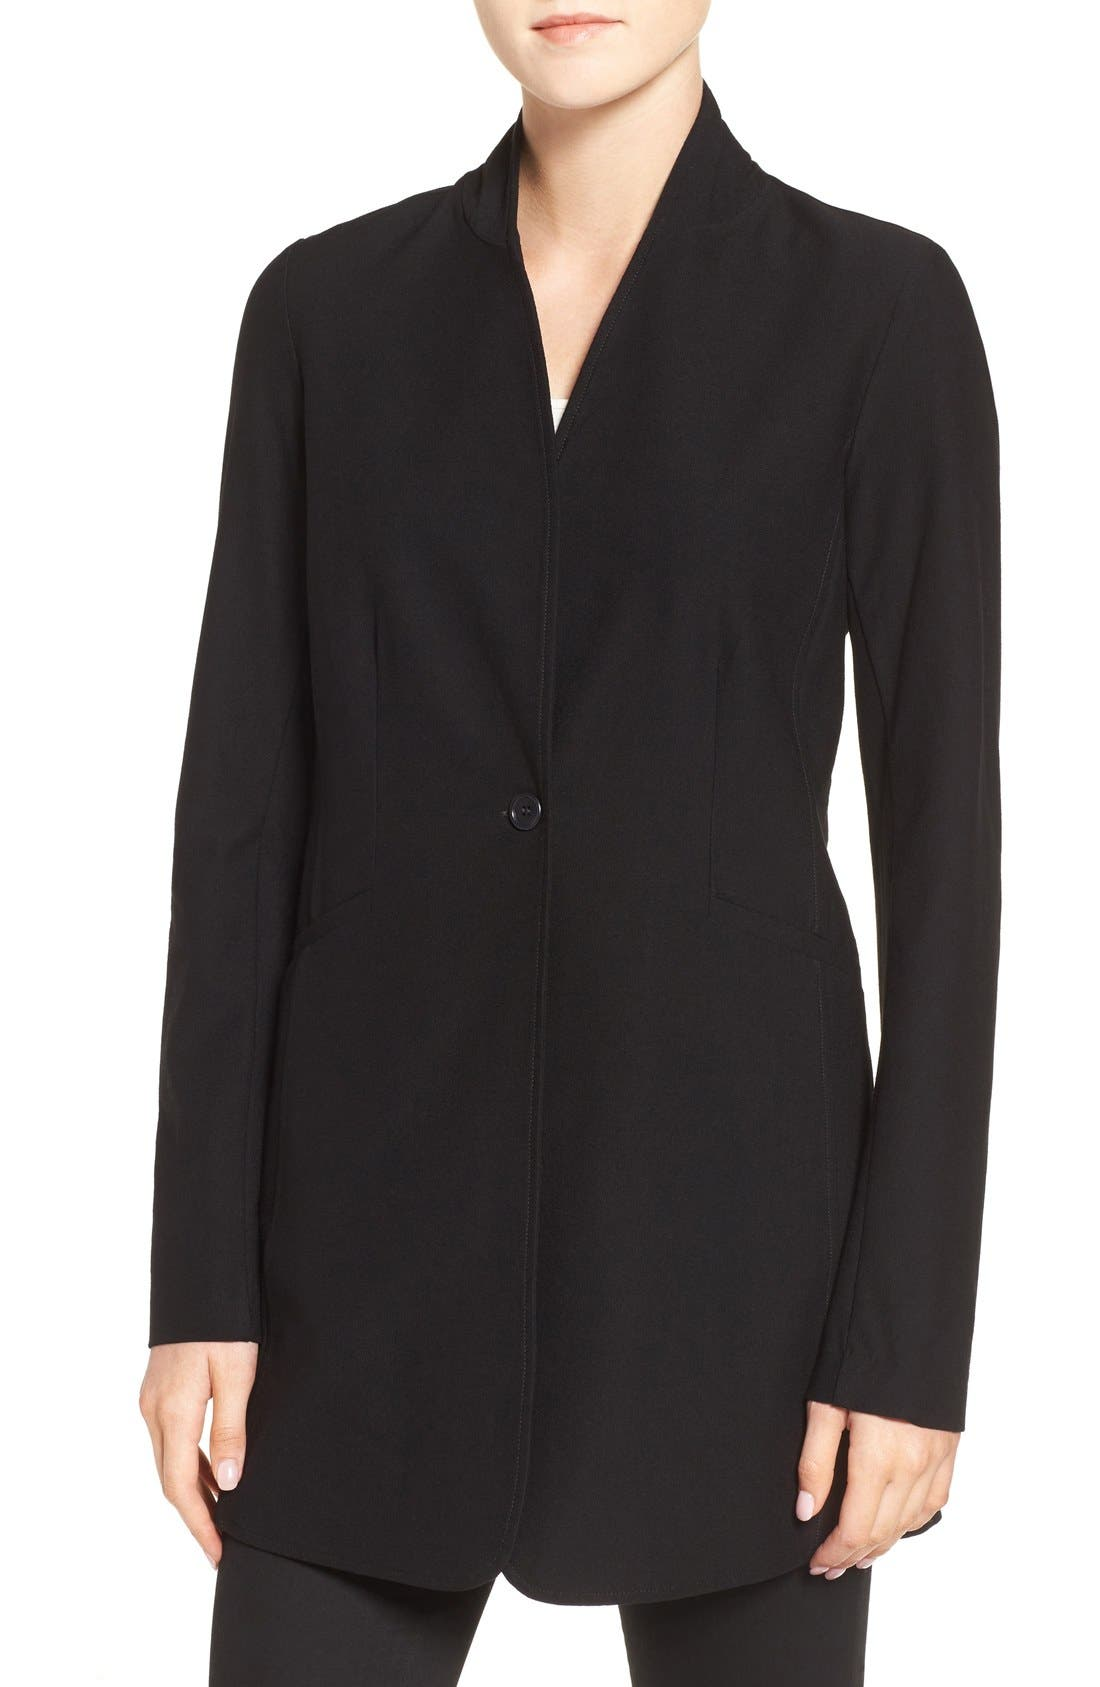 Main Image - Eileen Fisher Washable Stretch Crepe Stand Collar Jacket (Regular & Petite)